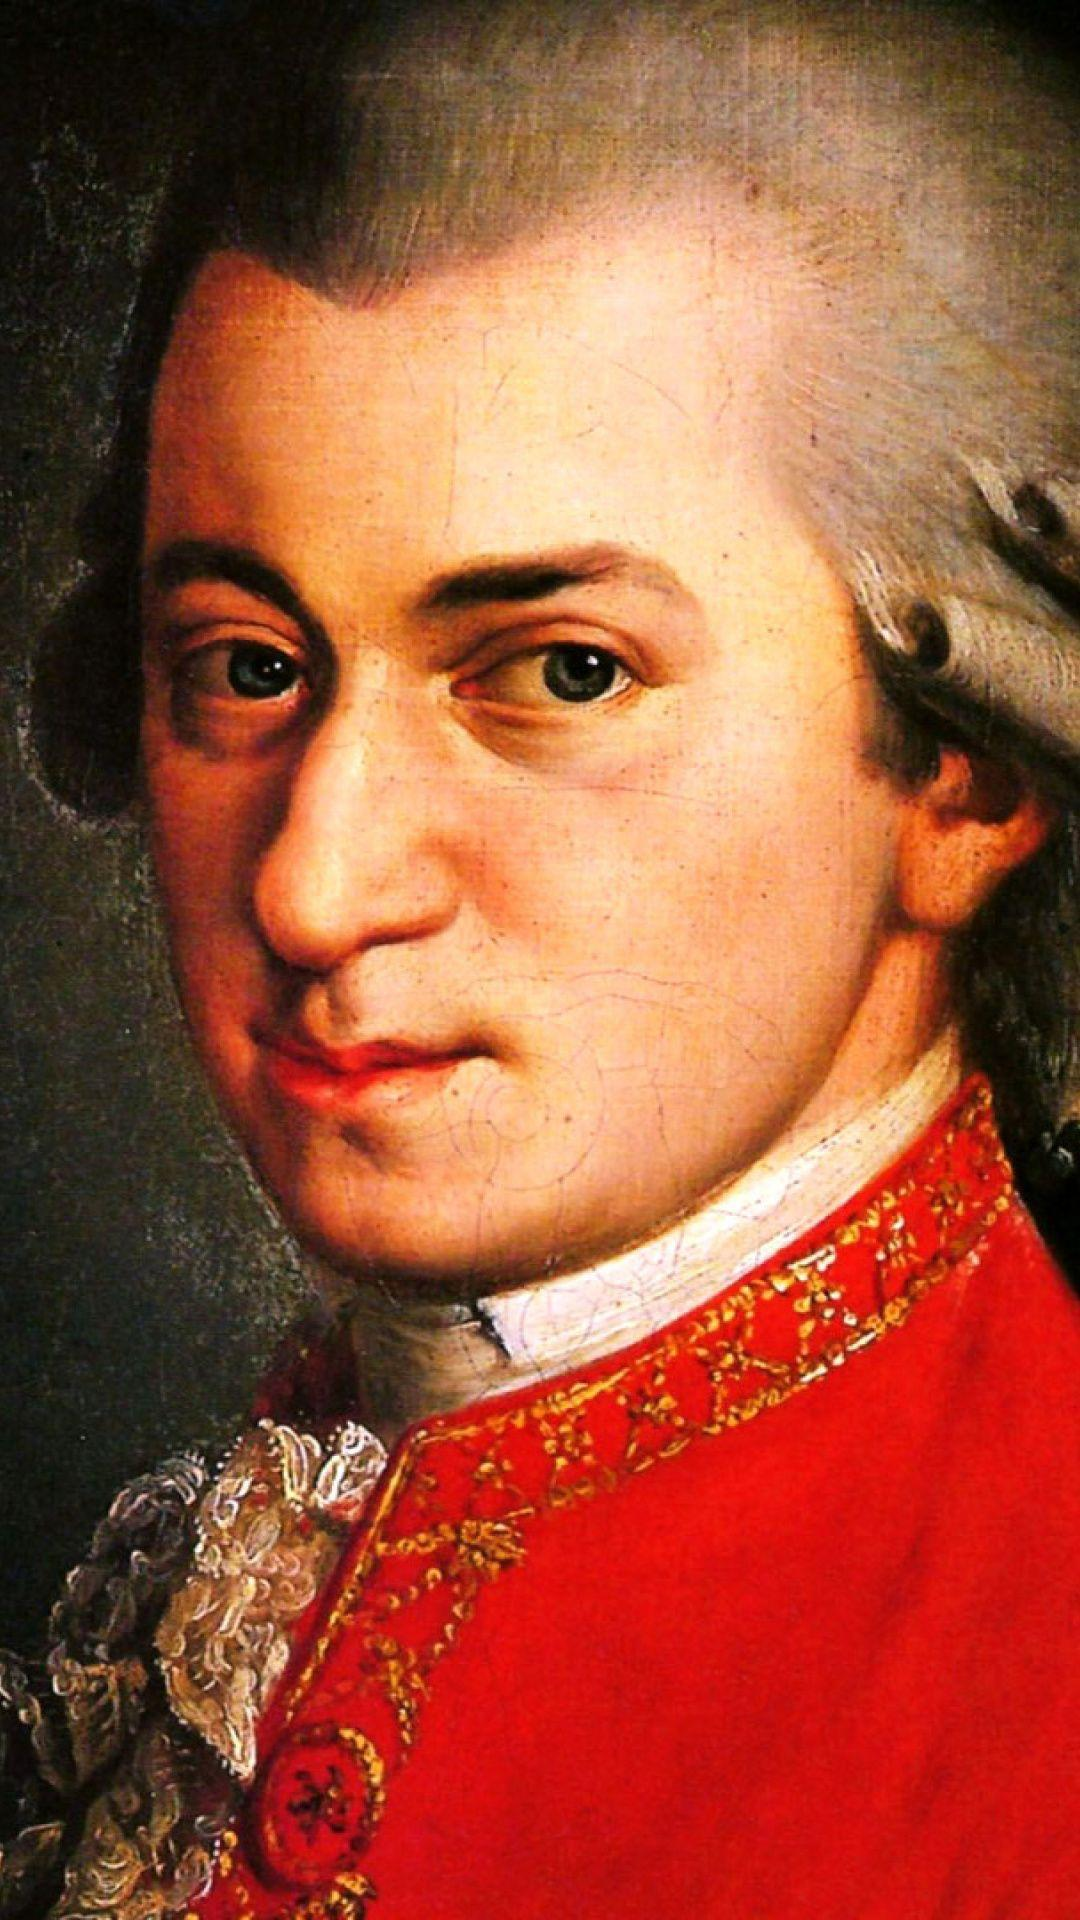 Wolfgang Amadeus Mozart Wallpaper for 1080x1920